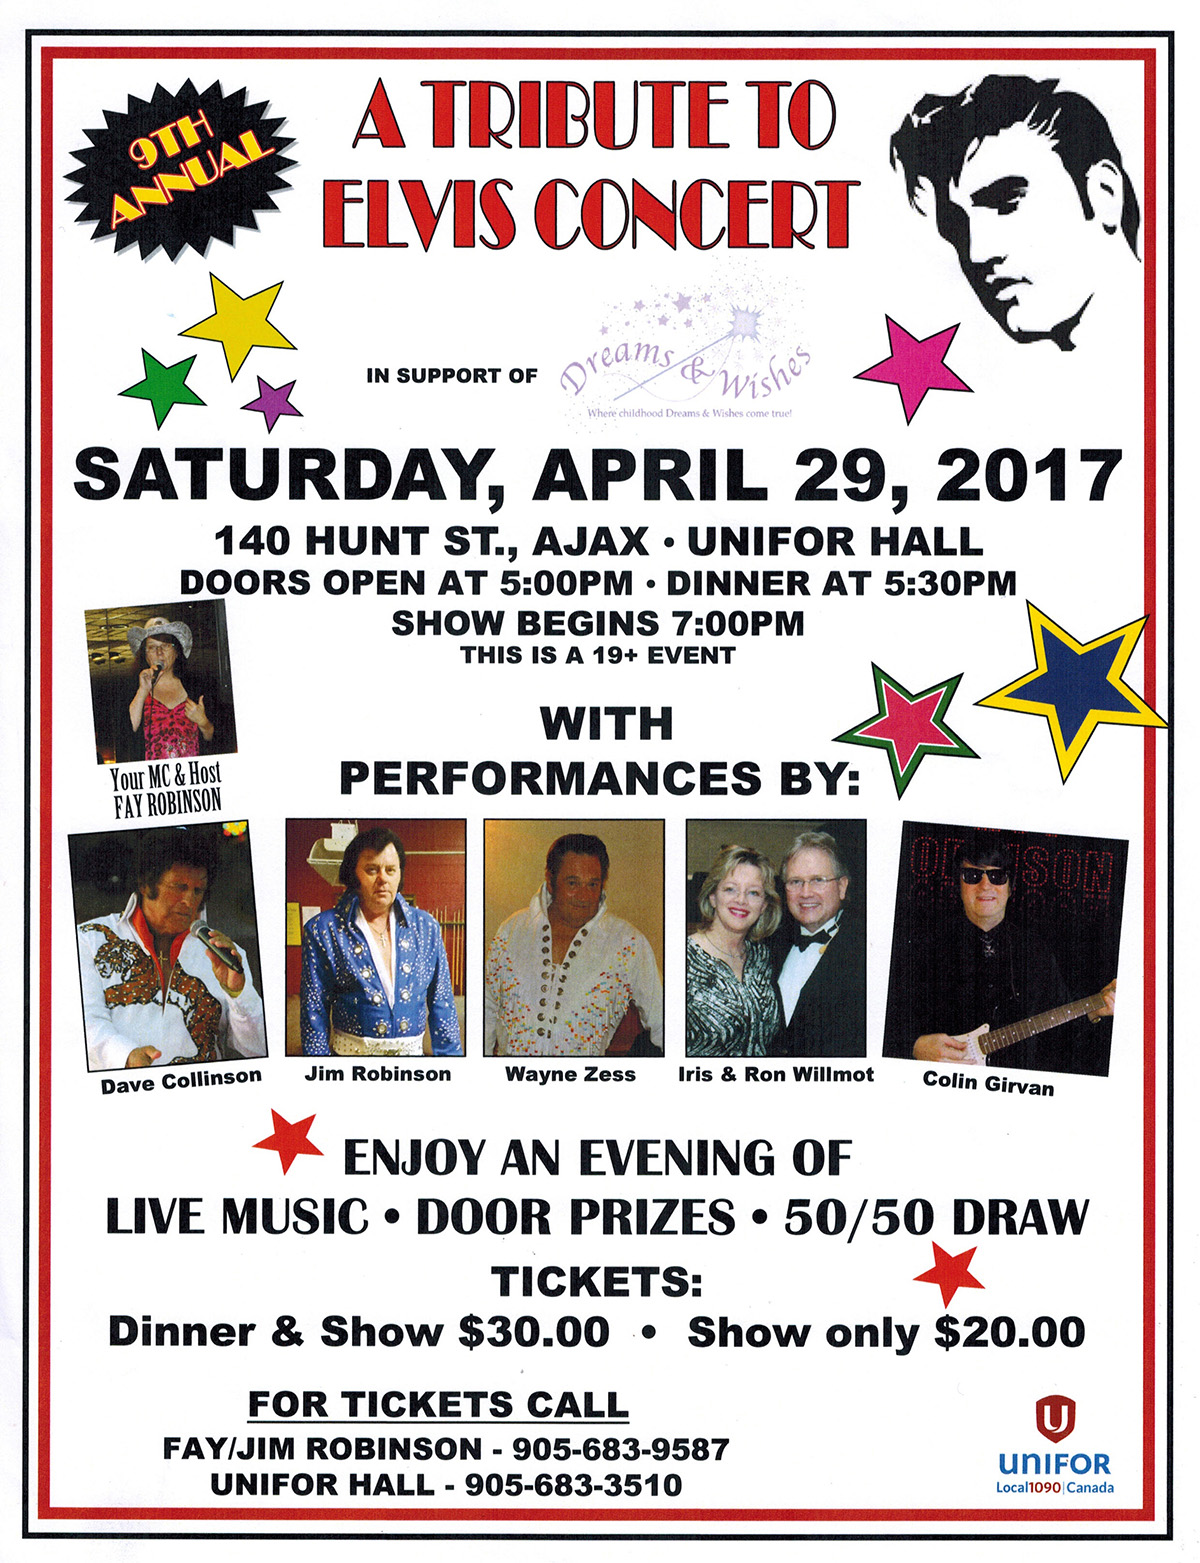 A Tribute to Elvis Fundraiser – Saturday April 29, 2017